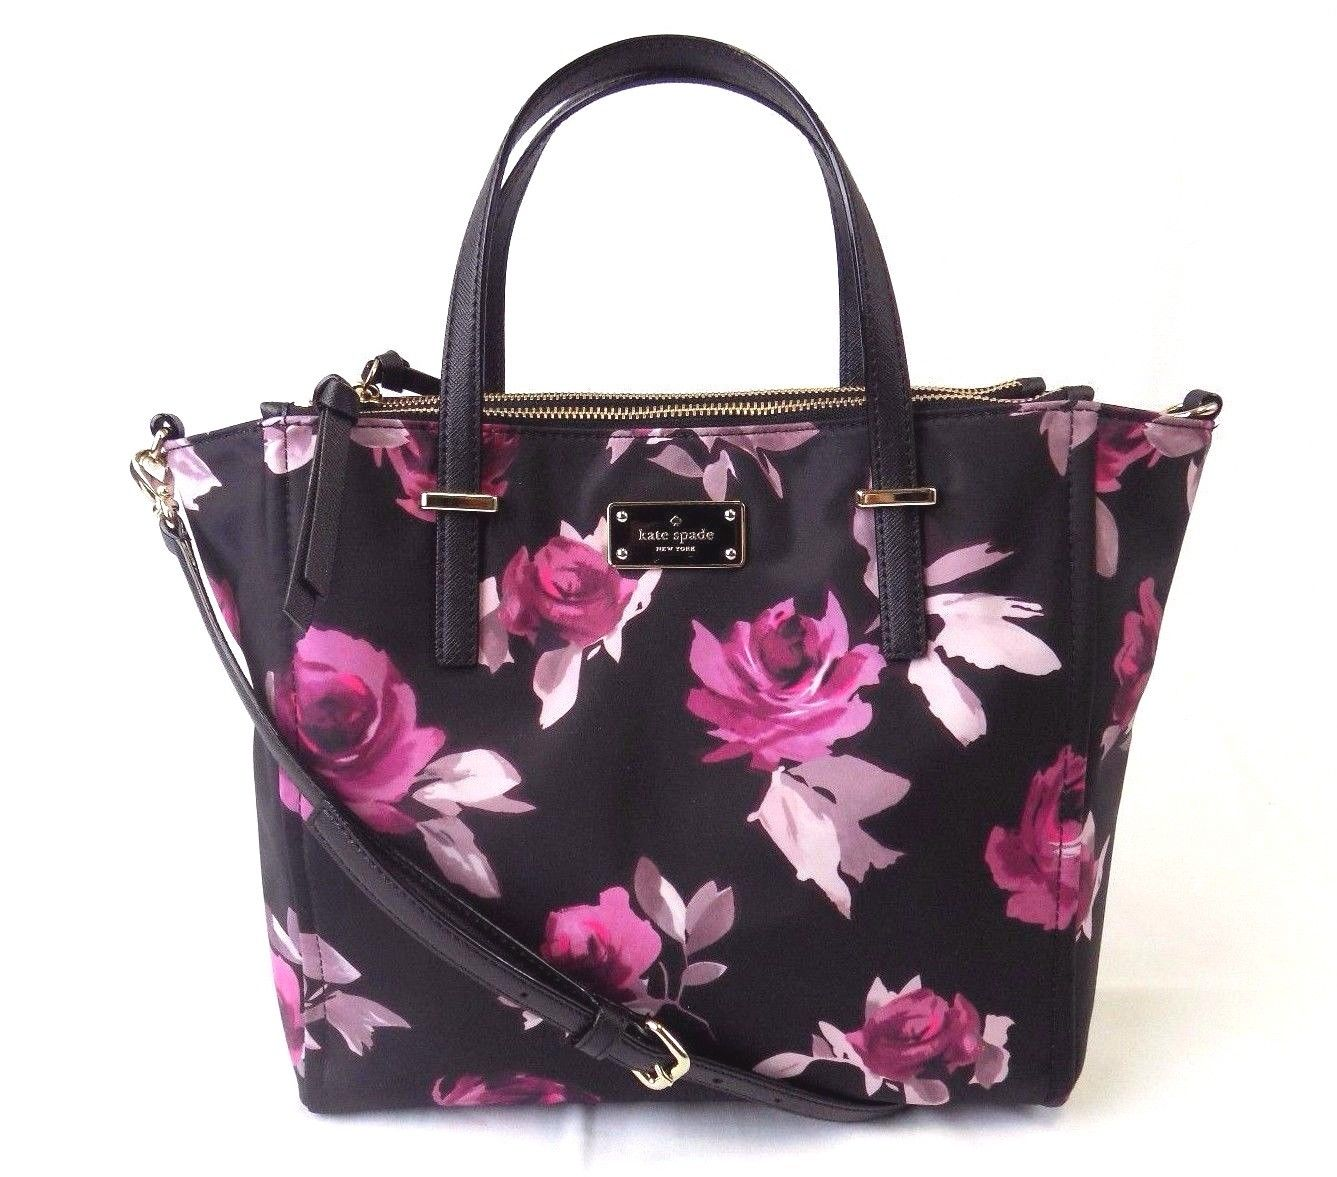 6e19cd3180 Kate Spade New York - NEW KATE SPADE ALYSE WILSON ROAD ROSE SYMPHONY TOTE  BLACK FLORAL BAG HANDBAG - Walmart.com